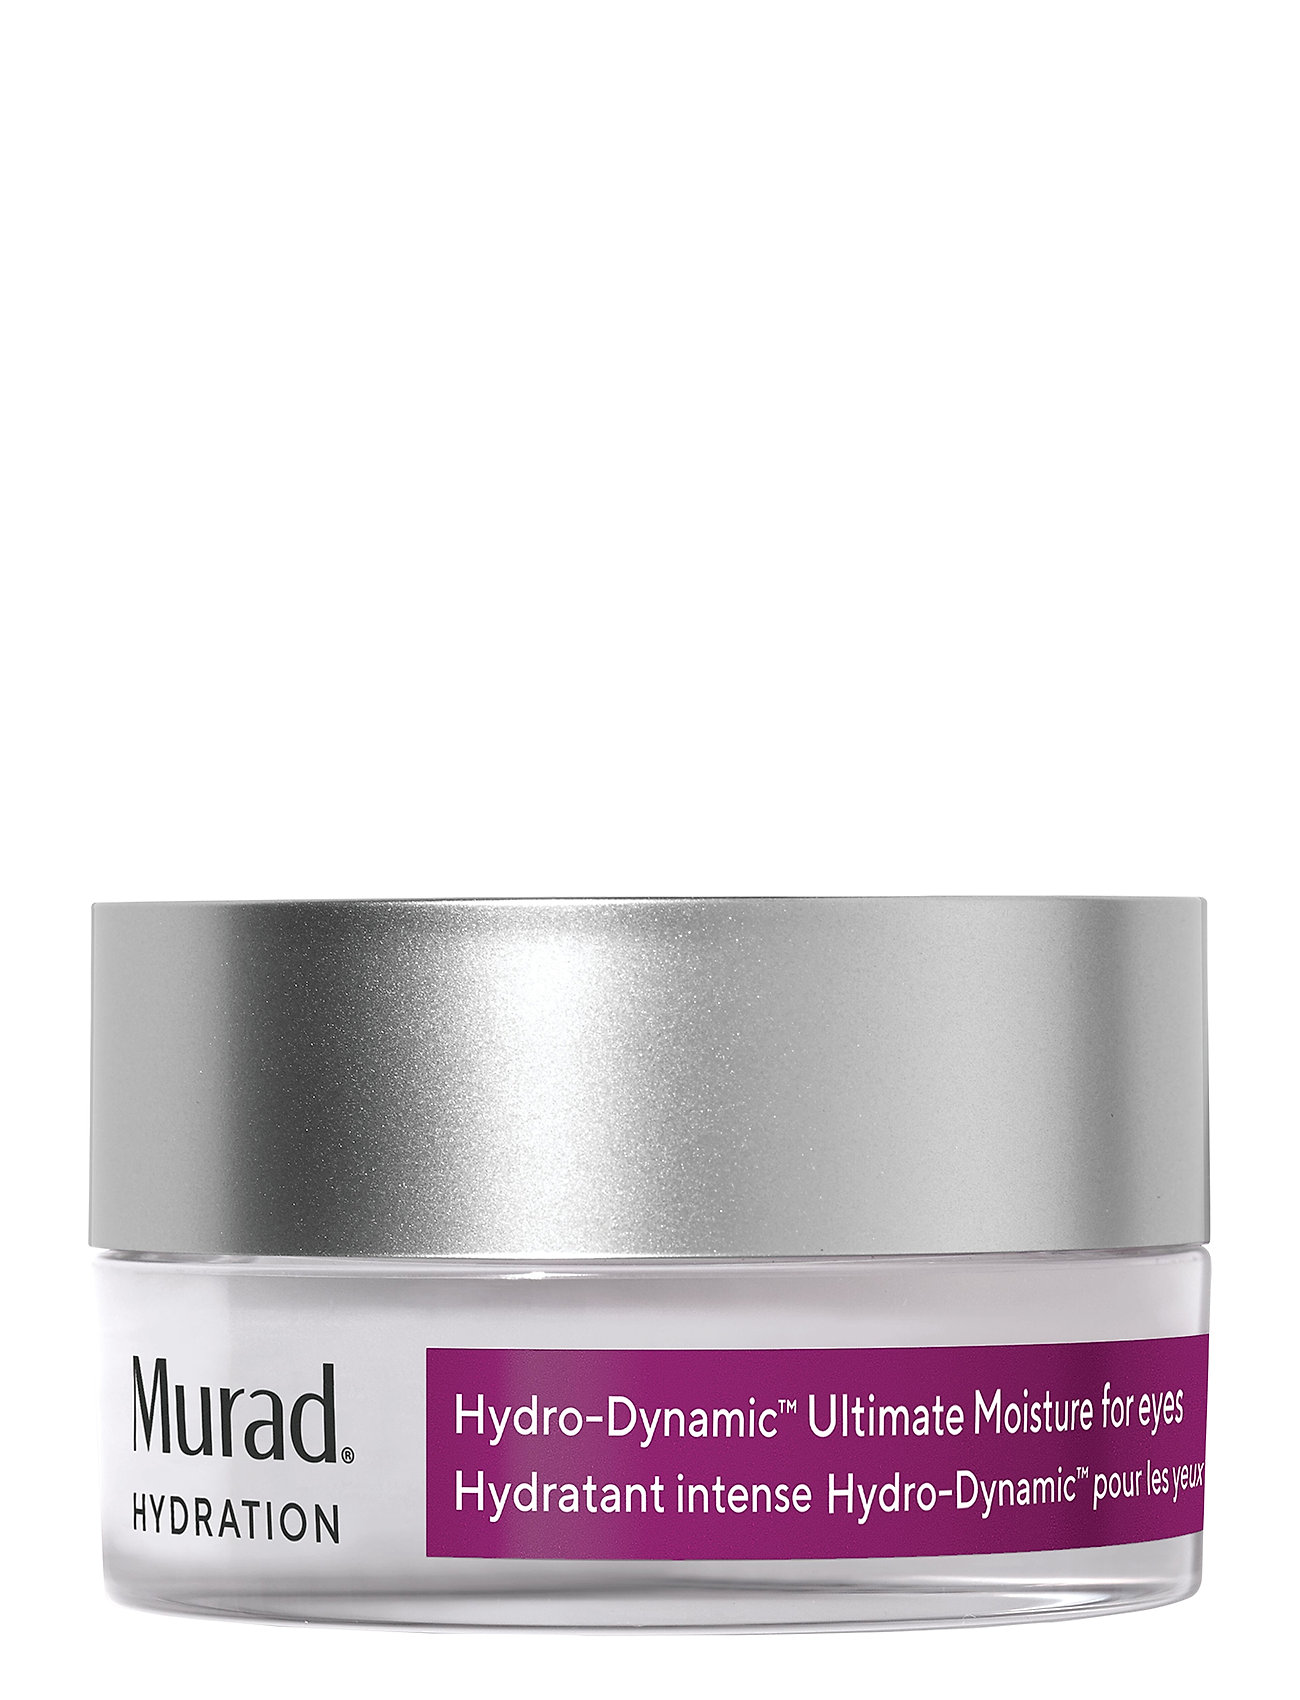 Murad Hydration Hydro-Dynamic Ultimate Moisture for eyes - NO COLOUR